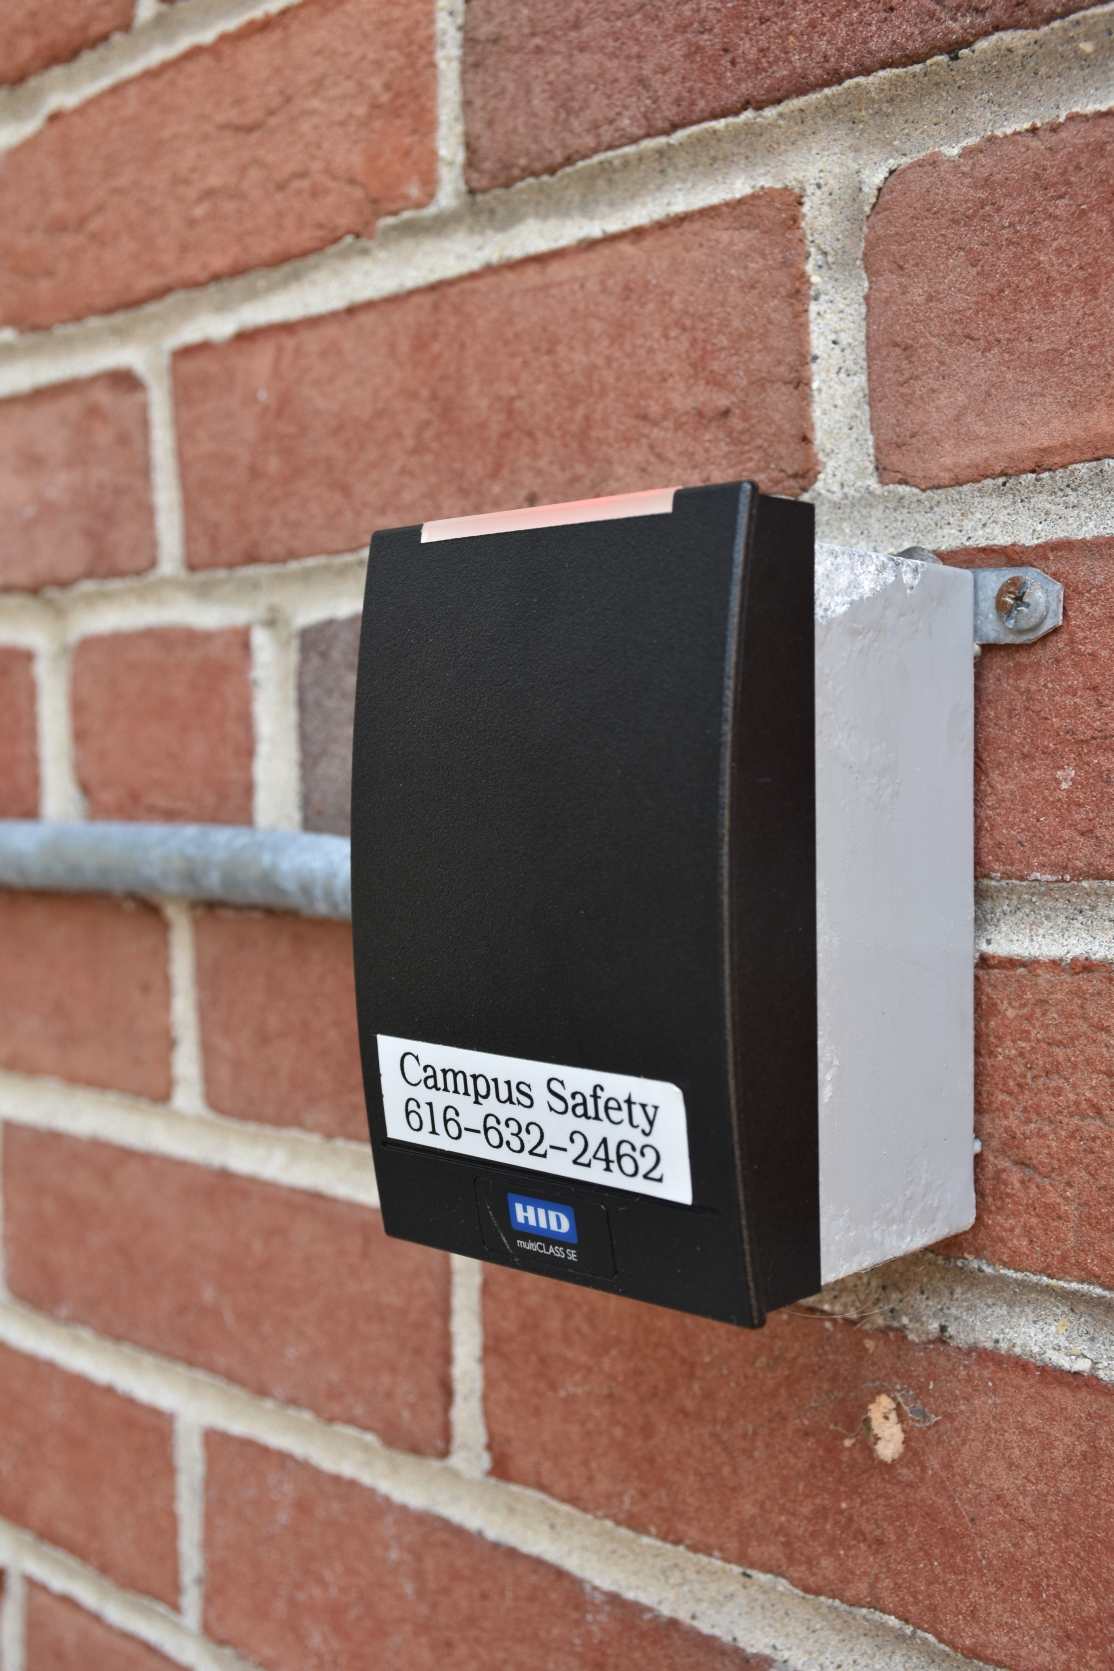 The ID scanner to get into the buildings with a red light